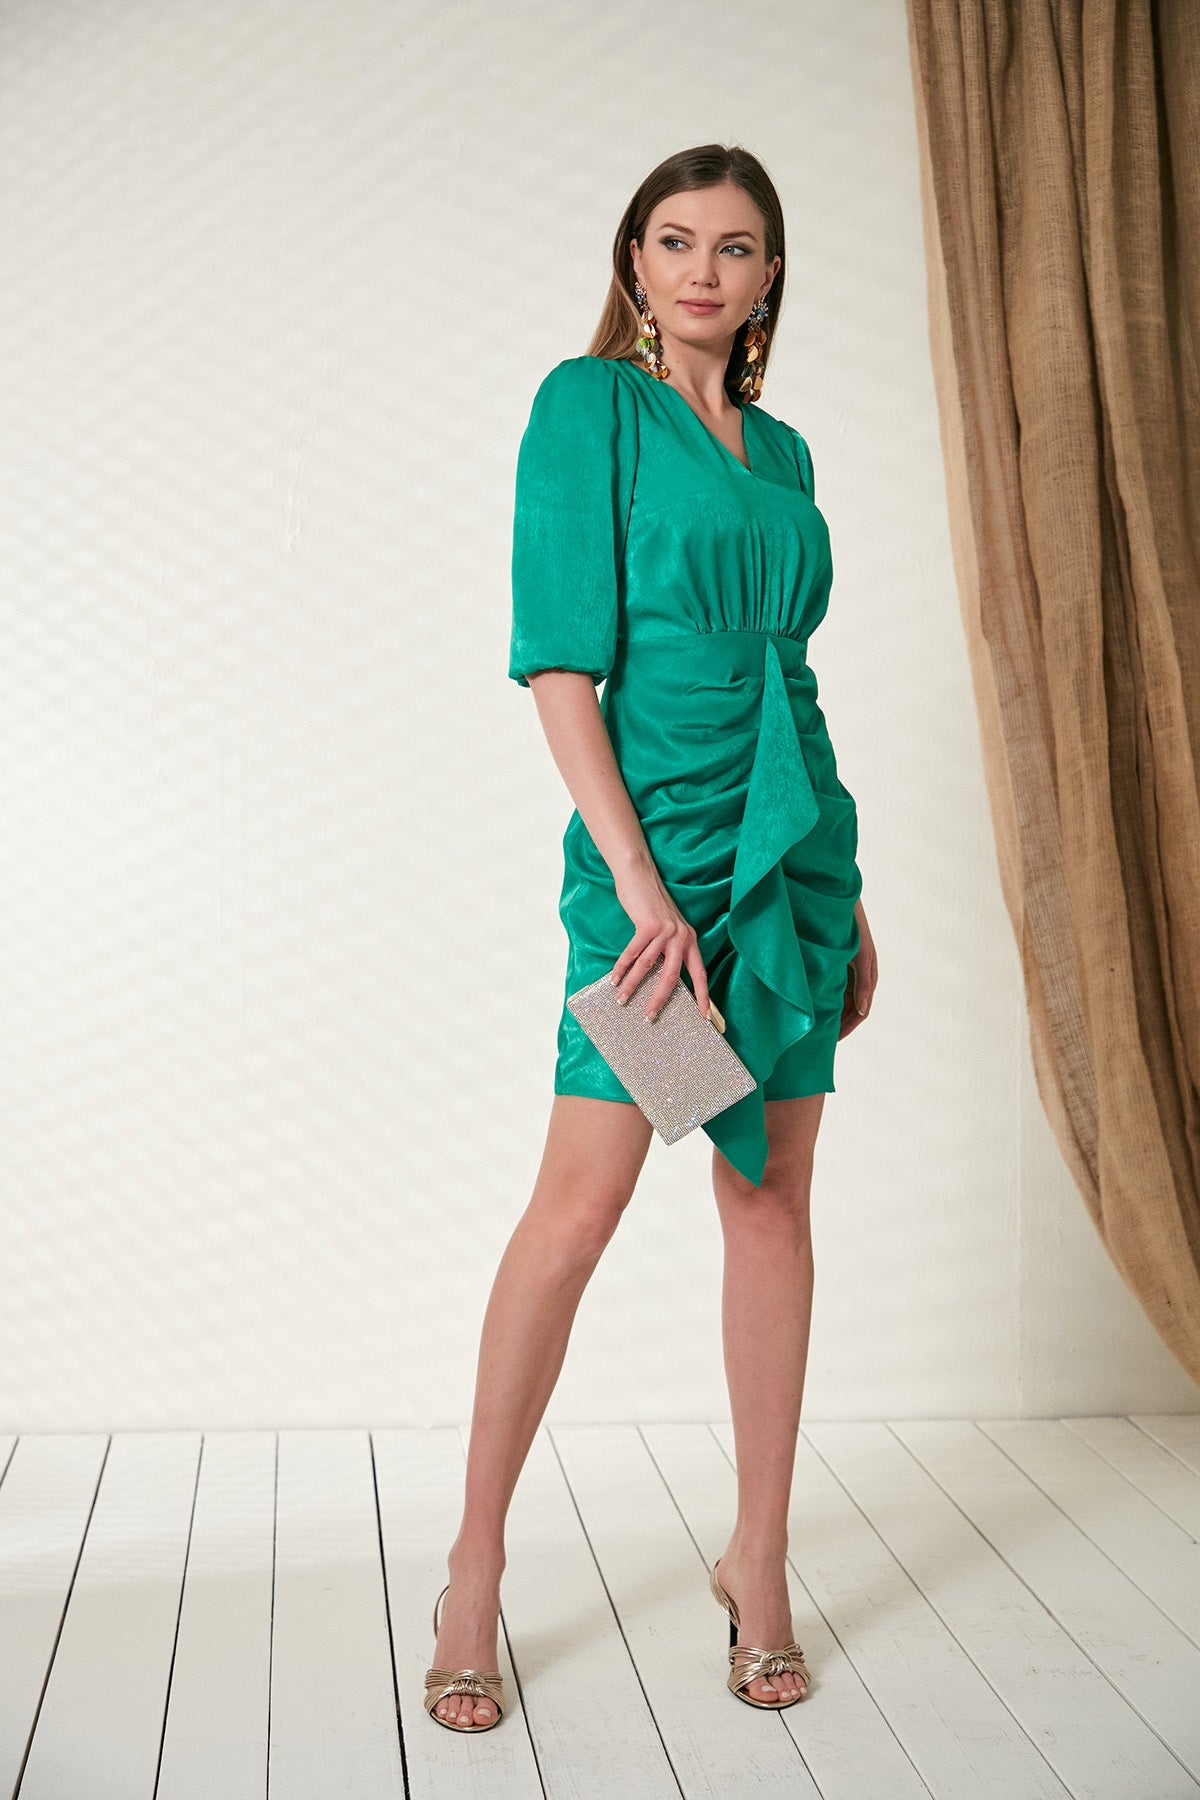 Ruffle dress in green